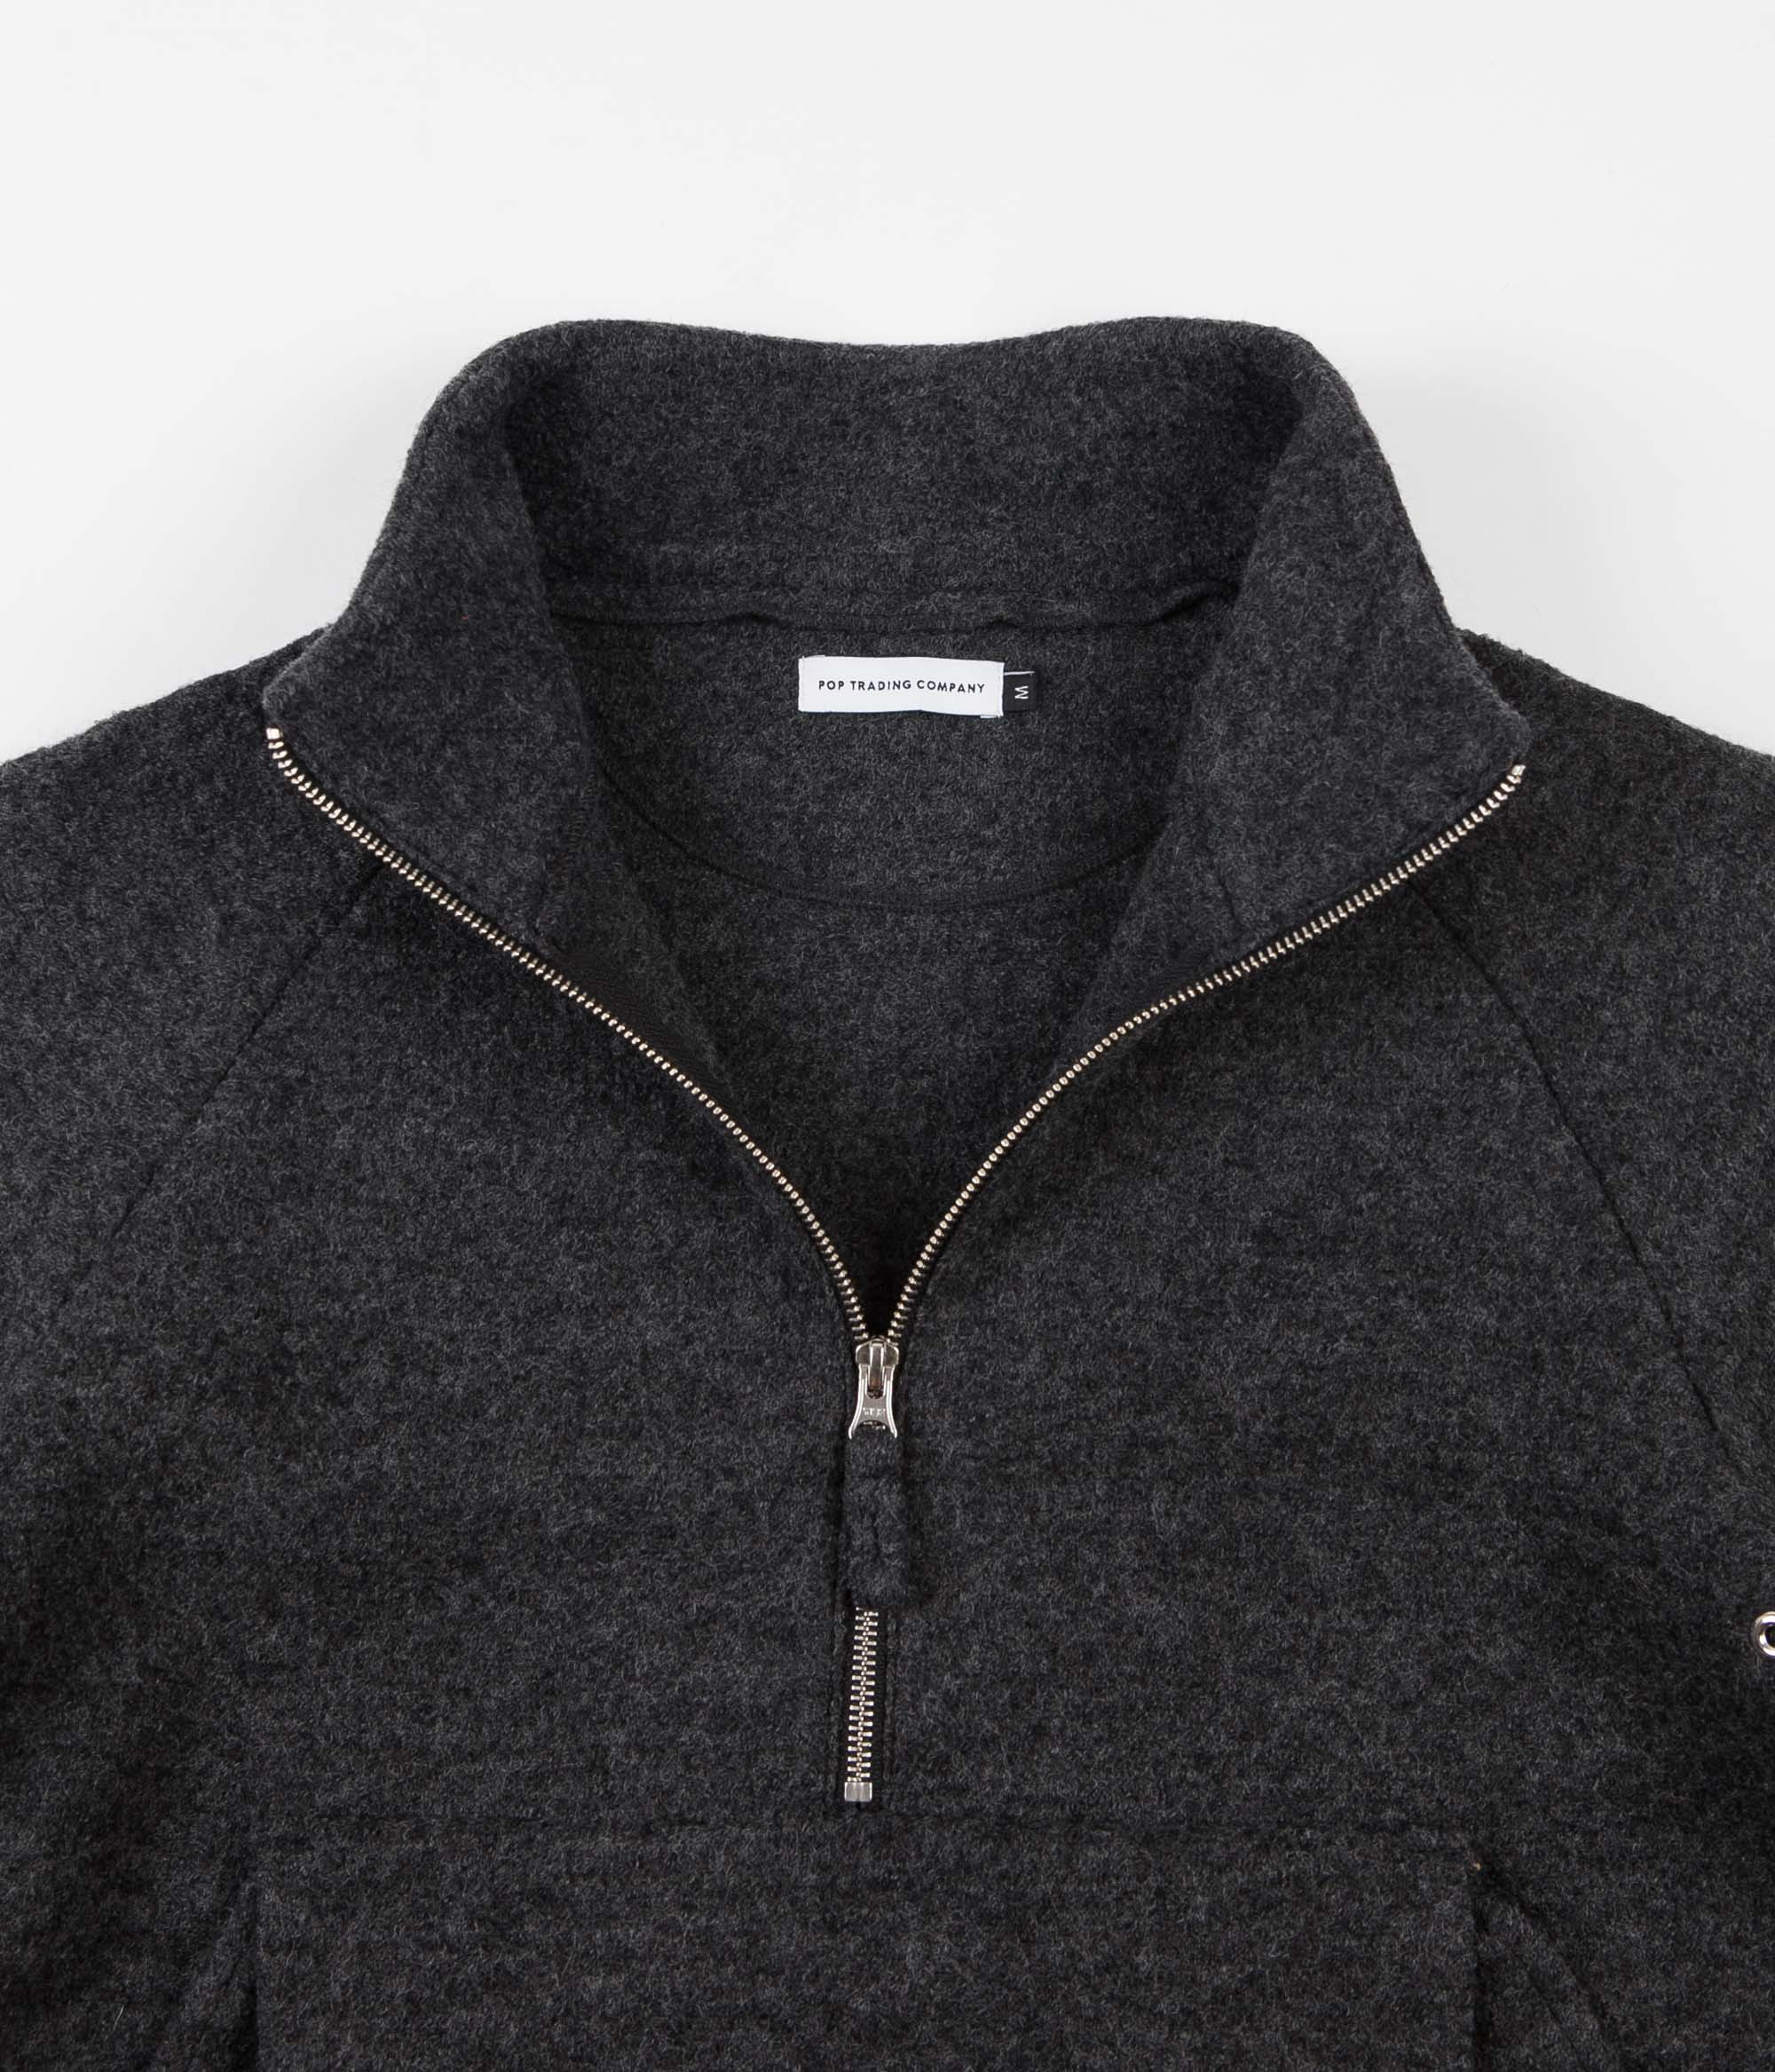 Pop Trading Company DRS Jacket - Anthracite Boiled Wool